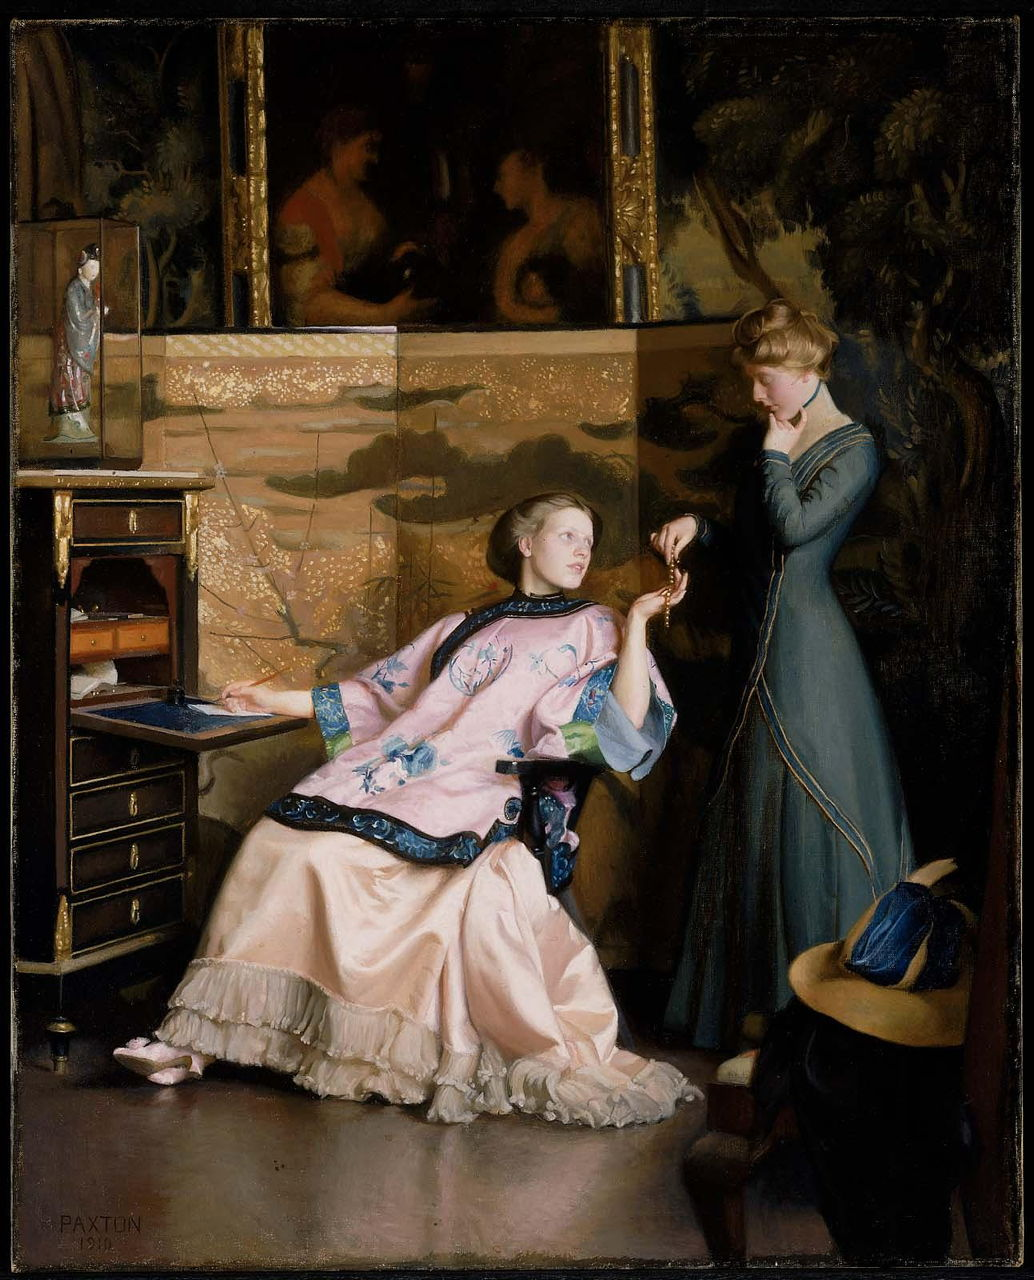 The New Necklace by William Paxton (1910)